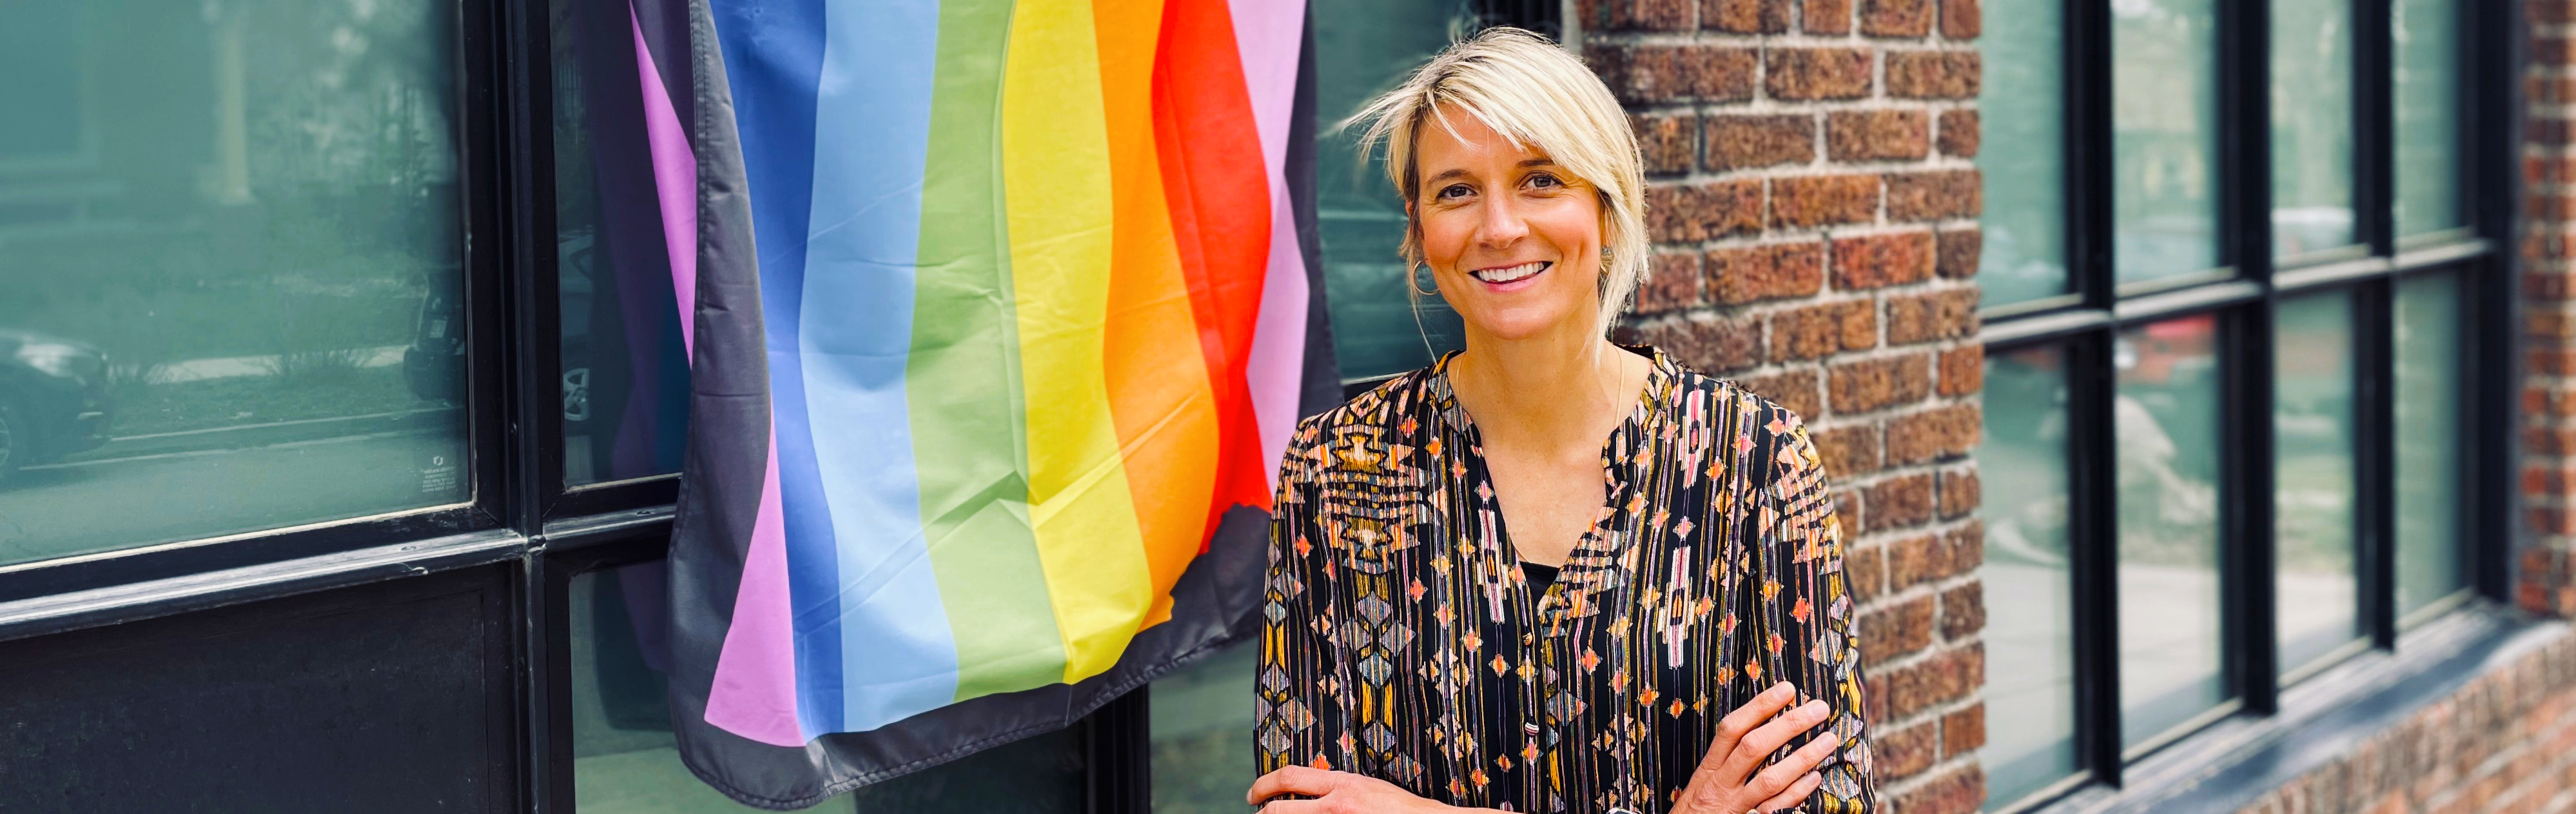 Carey Candrian stands by pride flag